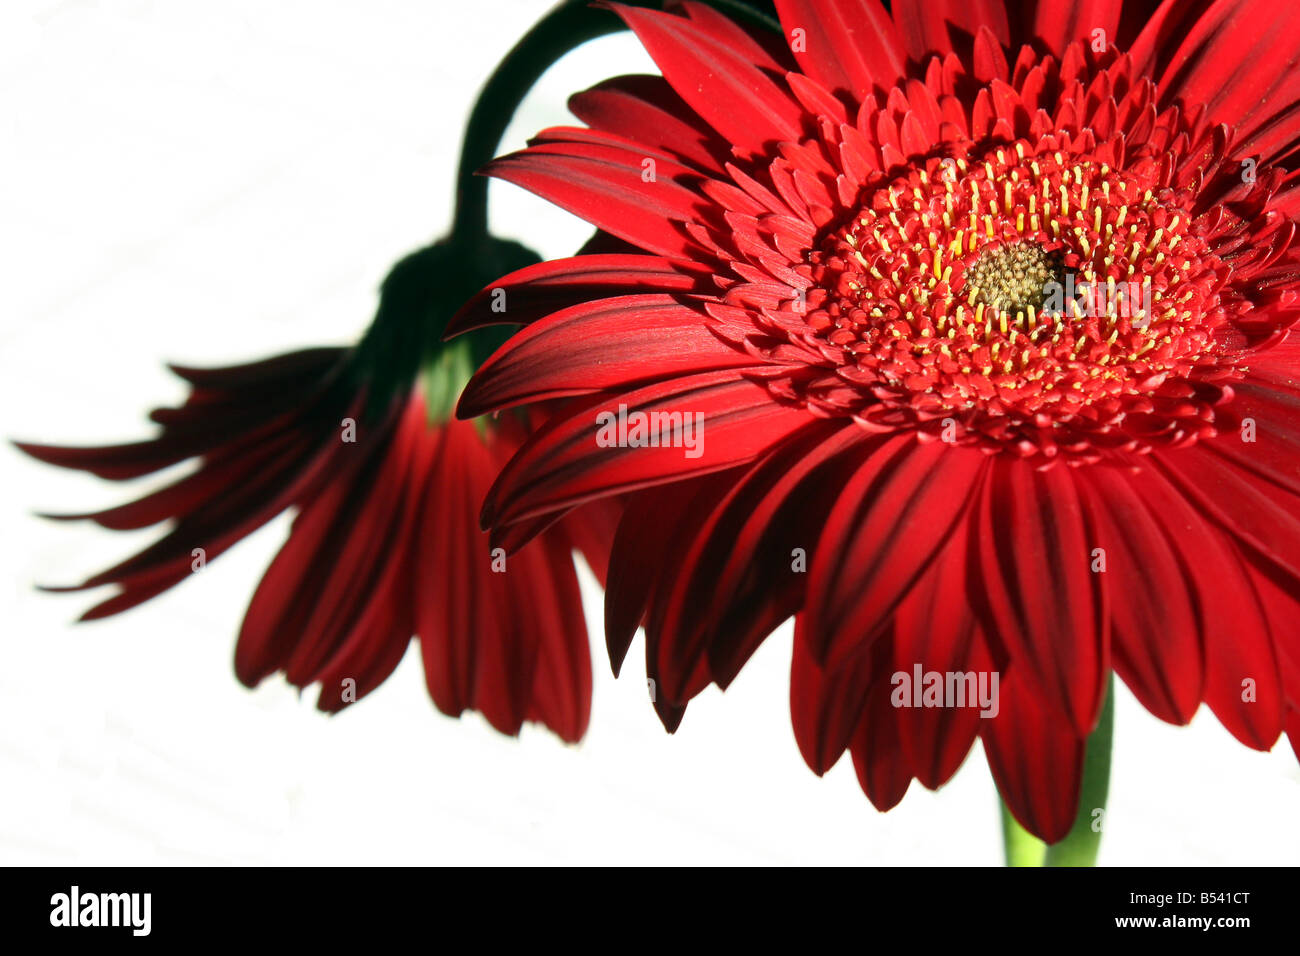 A still life with two red gerbera flowers, in natural lighting. - Stock Image